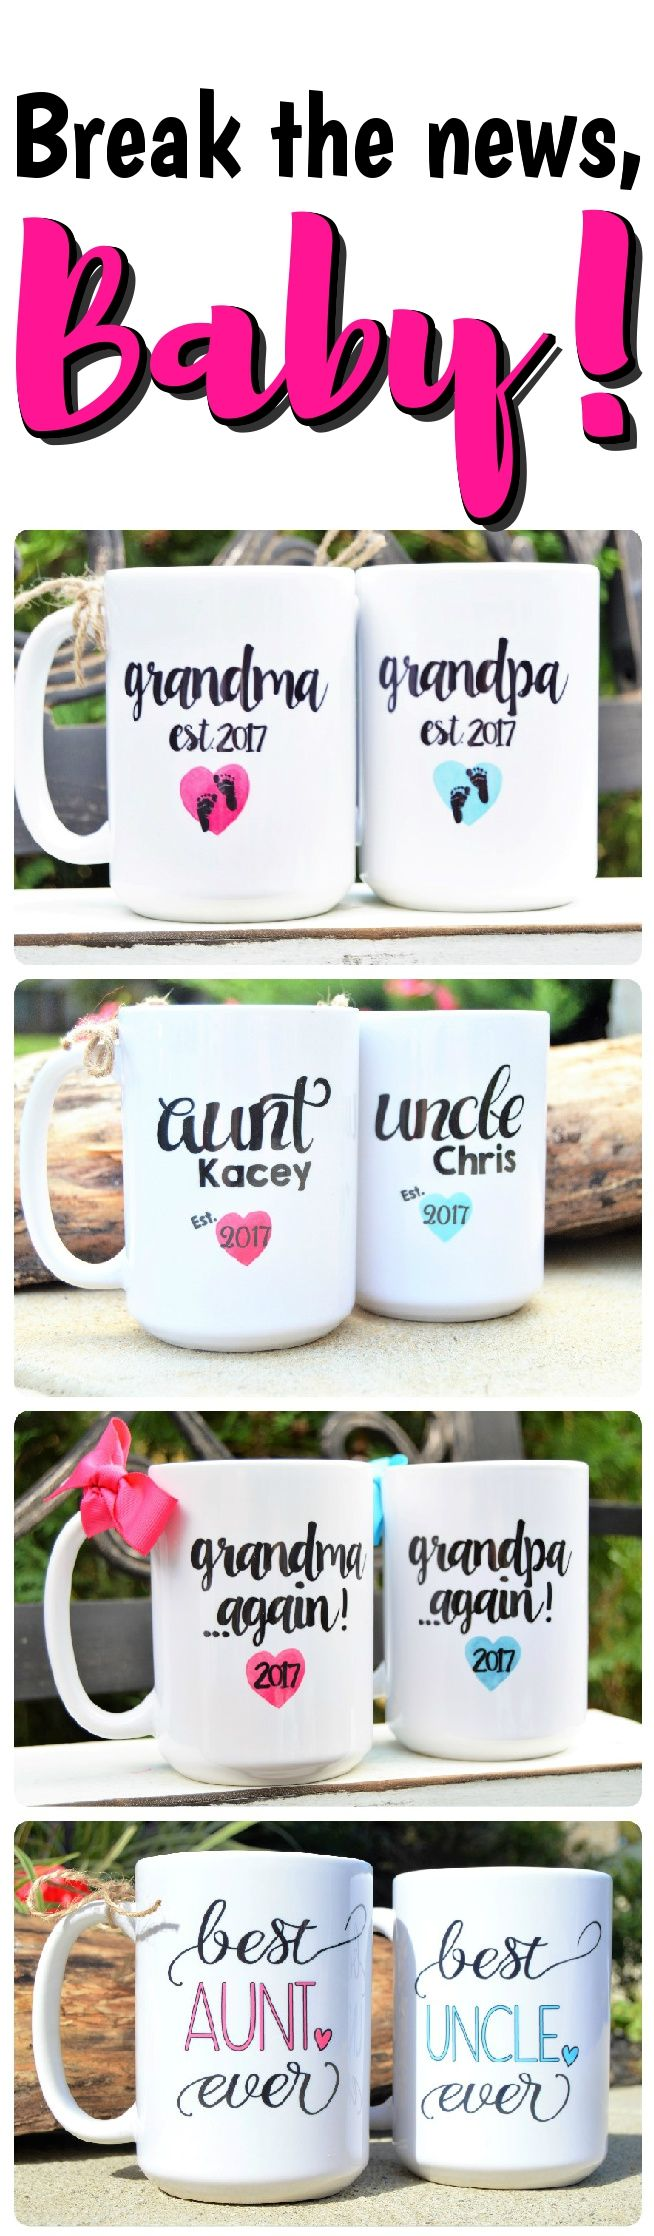 These roomy mugs,(which can be completely personalized by you!) are a perfect way to share the upcoming or recent arrival of a new baby! Watch the faces of your loved ones light the room as they notice the delightful details of these memorable coffee mugs. Made of sturdy glazed stoneware, they will remain a sweet reminder of an unforgettable little one. Customized with the names, dates & designs of your choice! Find inspiration for YOUR celebration at Baby Cake Lane on Etsy!